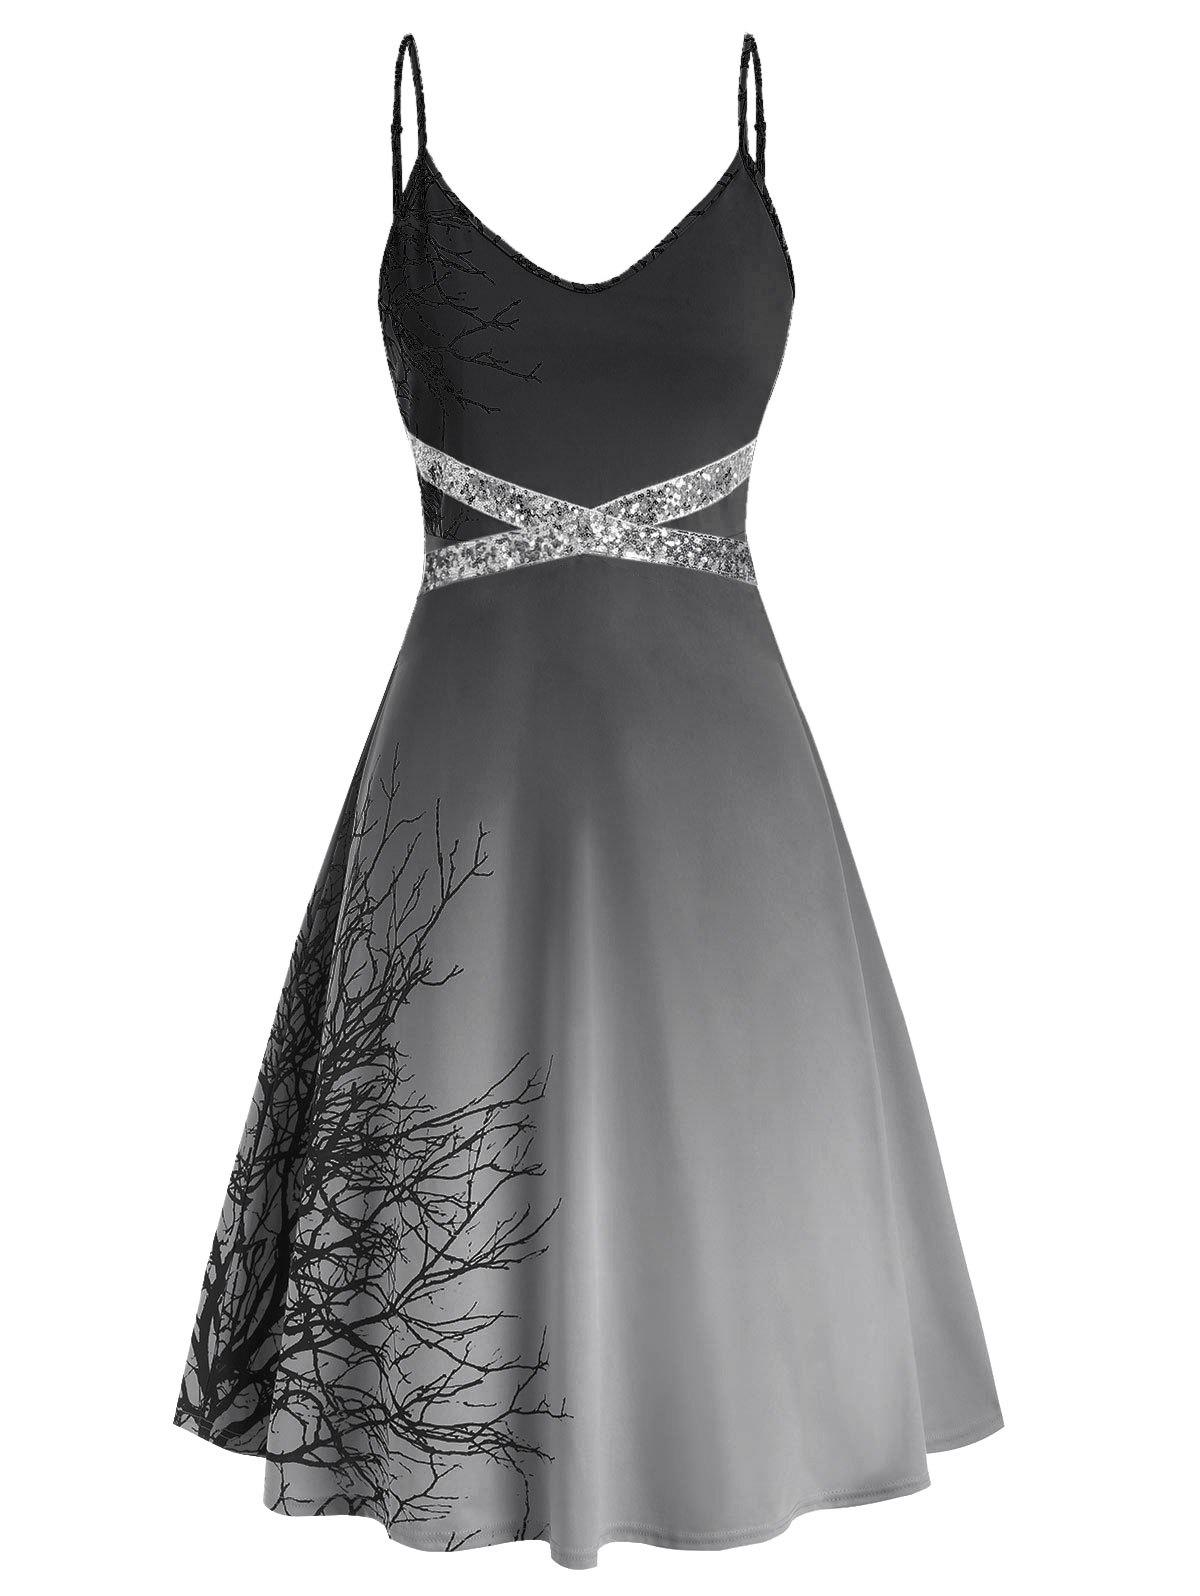 Plus Size Spaghetti Strap Tree Print Sequin Halloween Dress - CARBON GRAY 5X